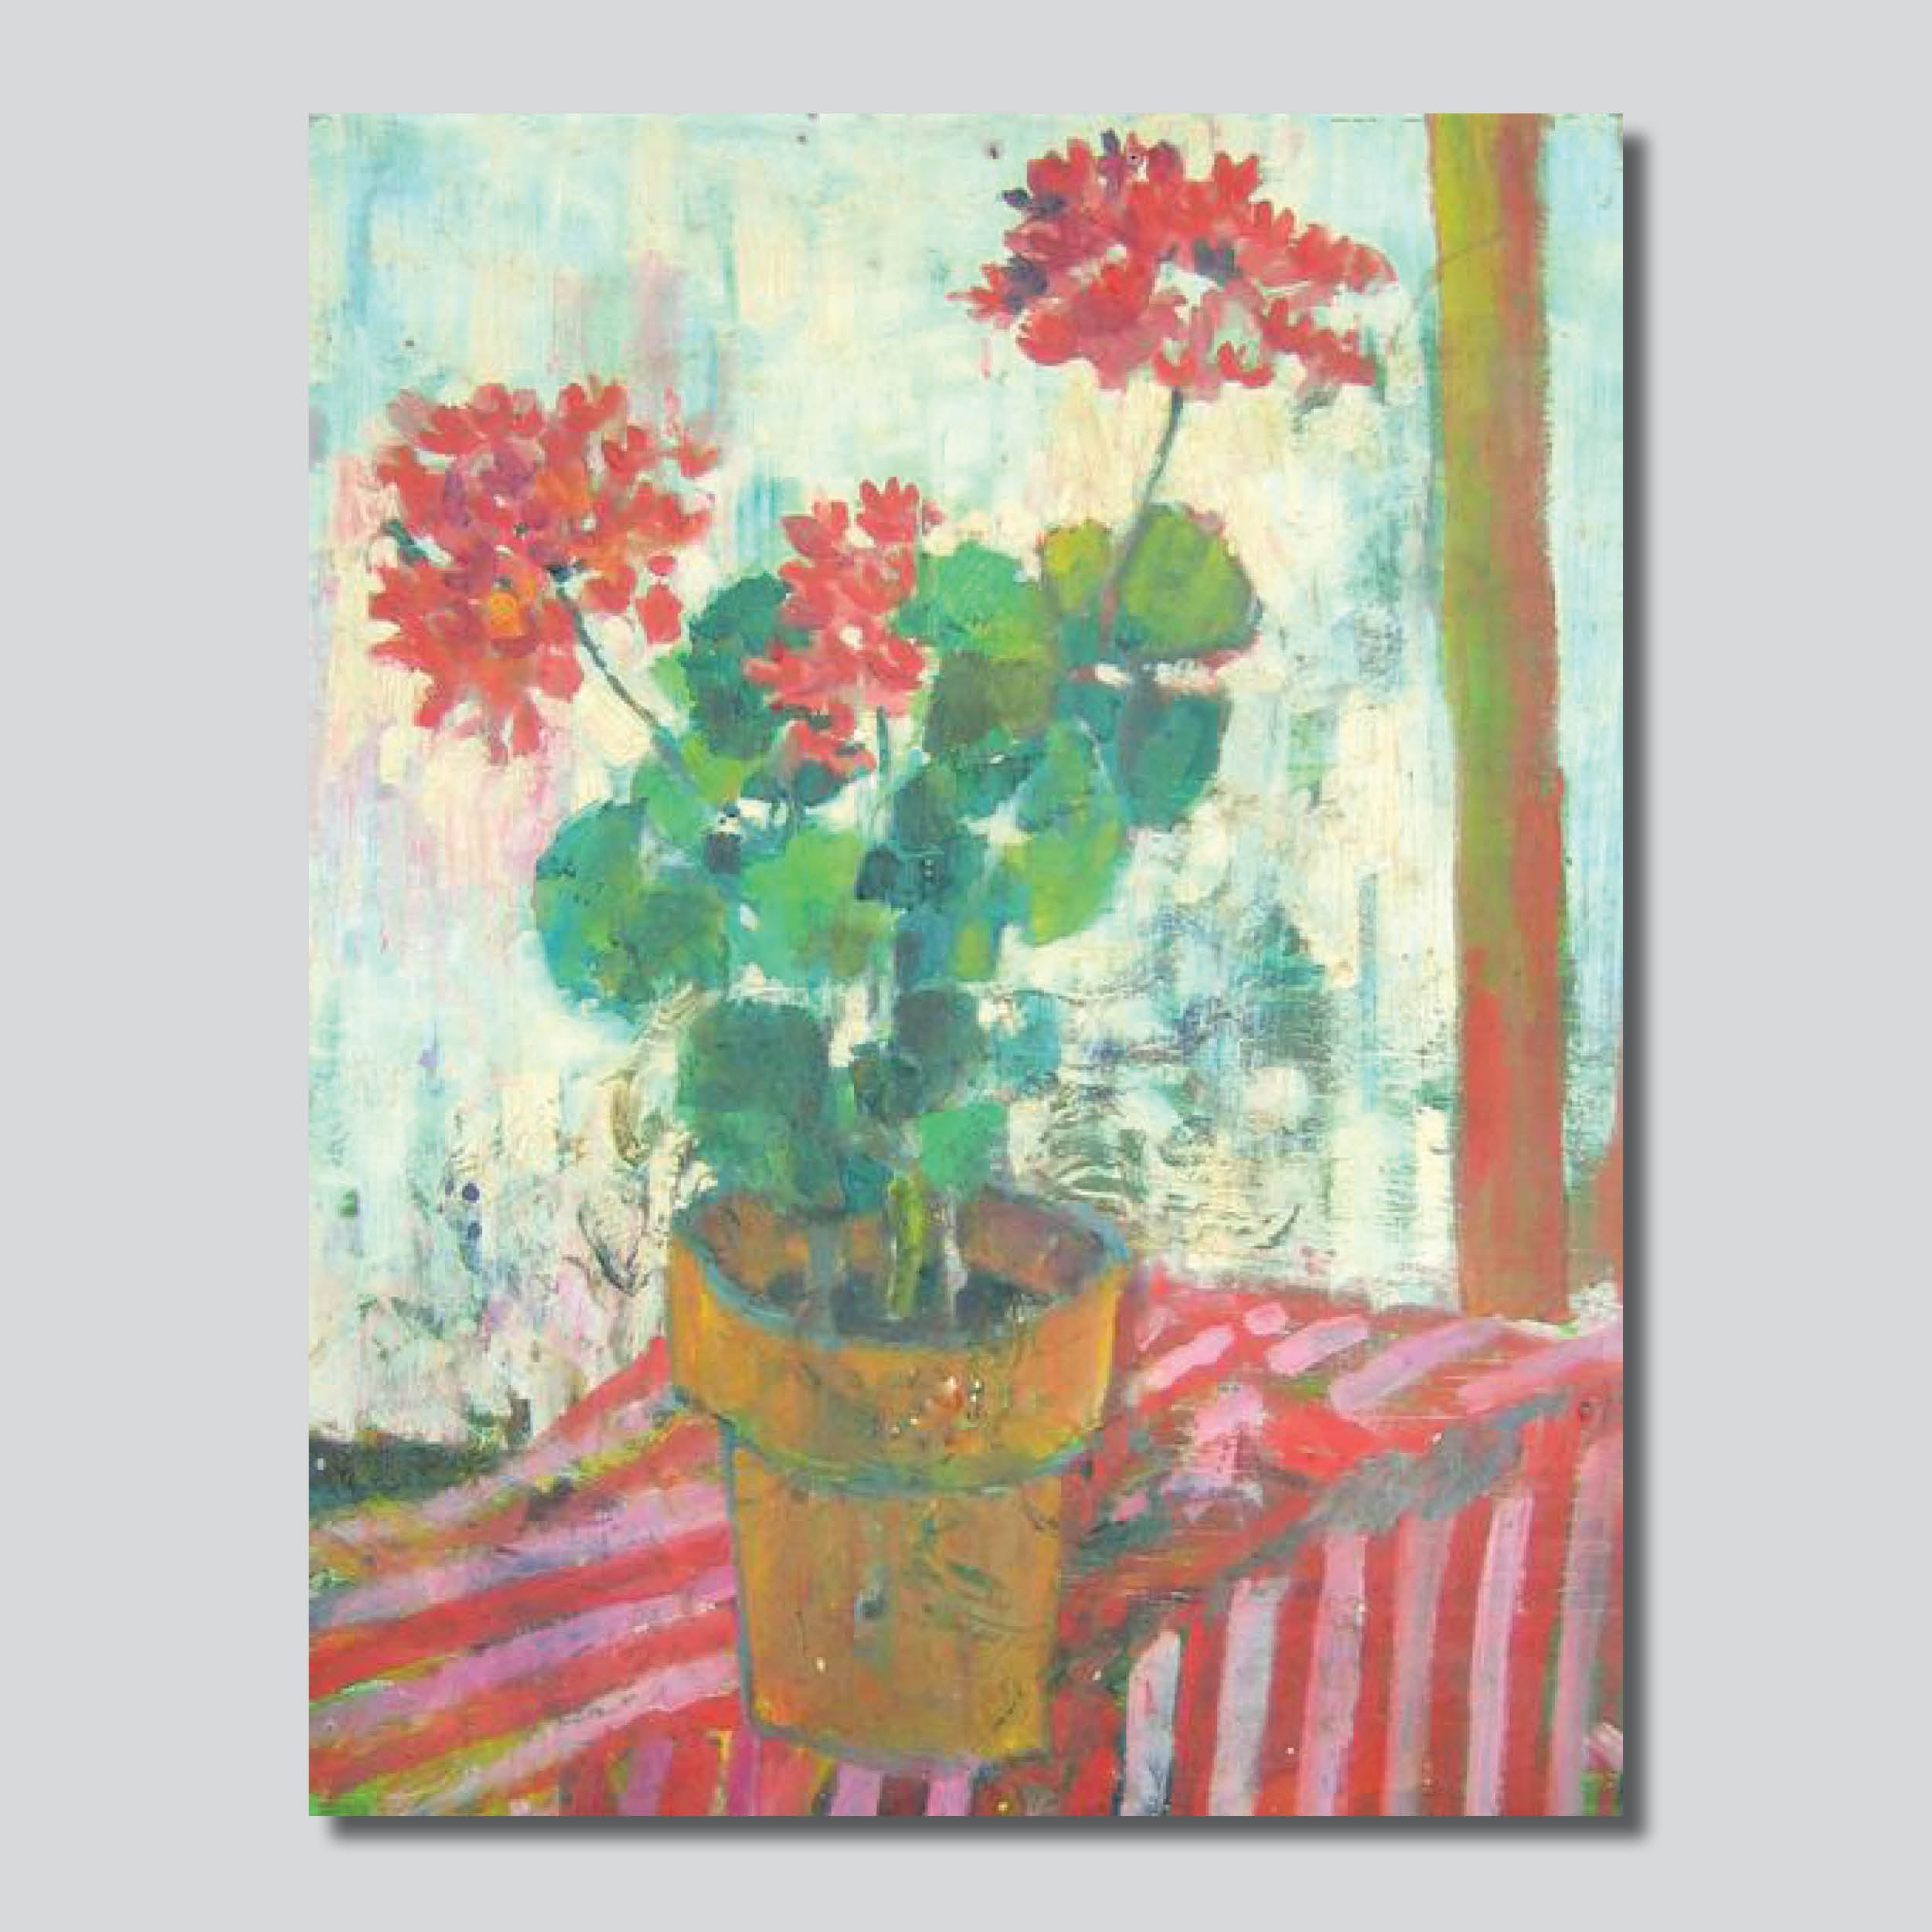 "Geranium Blooms 28"" x 38"" Giclee Printed On High Gloss Metal"